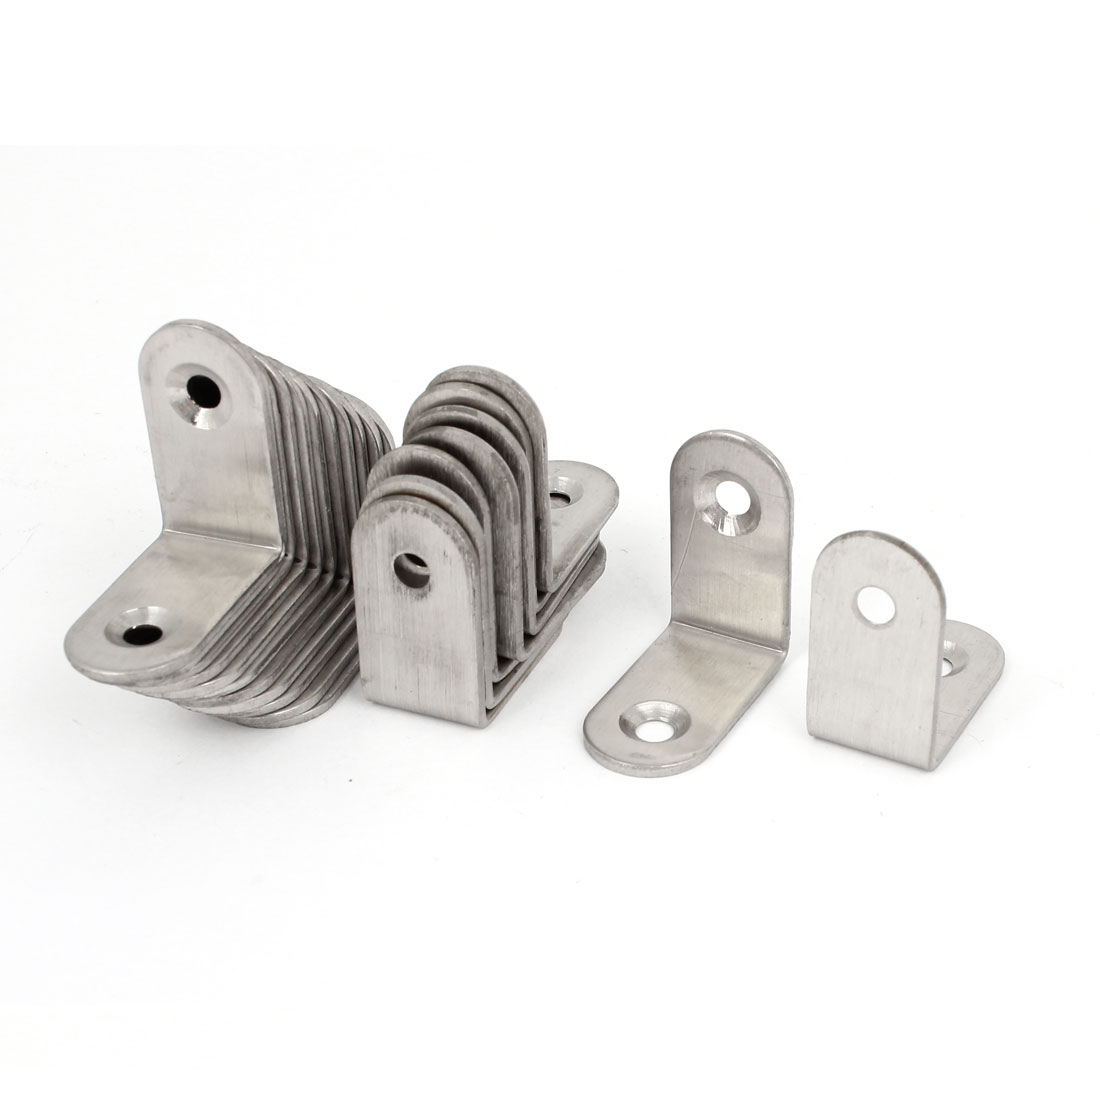 20 Pcs 30mmx30mm Stainless Steel Shelf Support Corner Brace Joint Right Angle Bracket